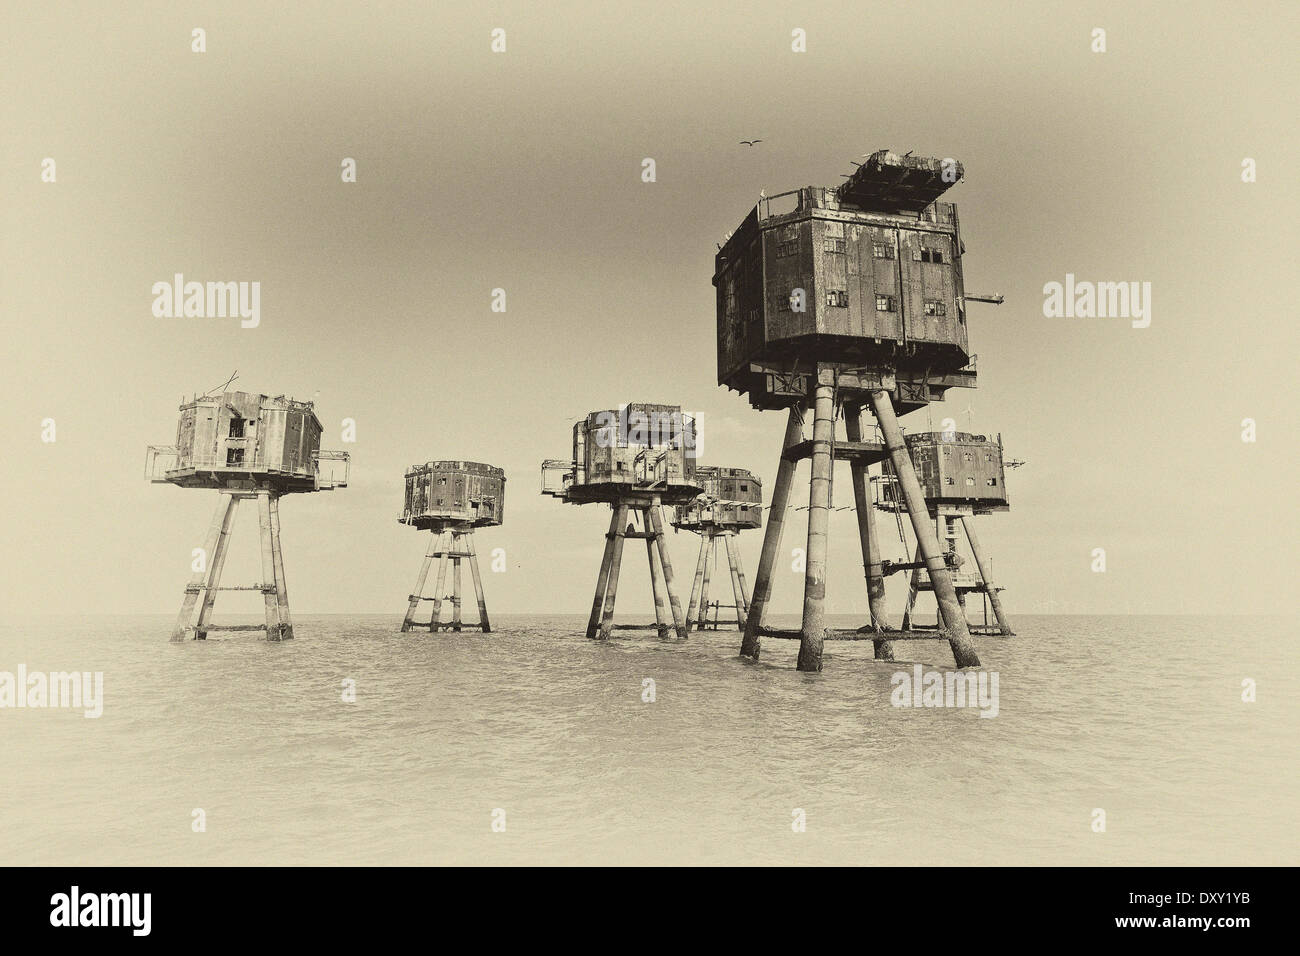 A black and white image of Maunsell Forts in Thames Estuary - Stock Image